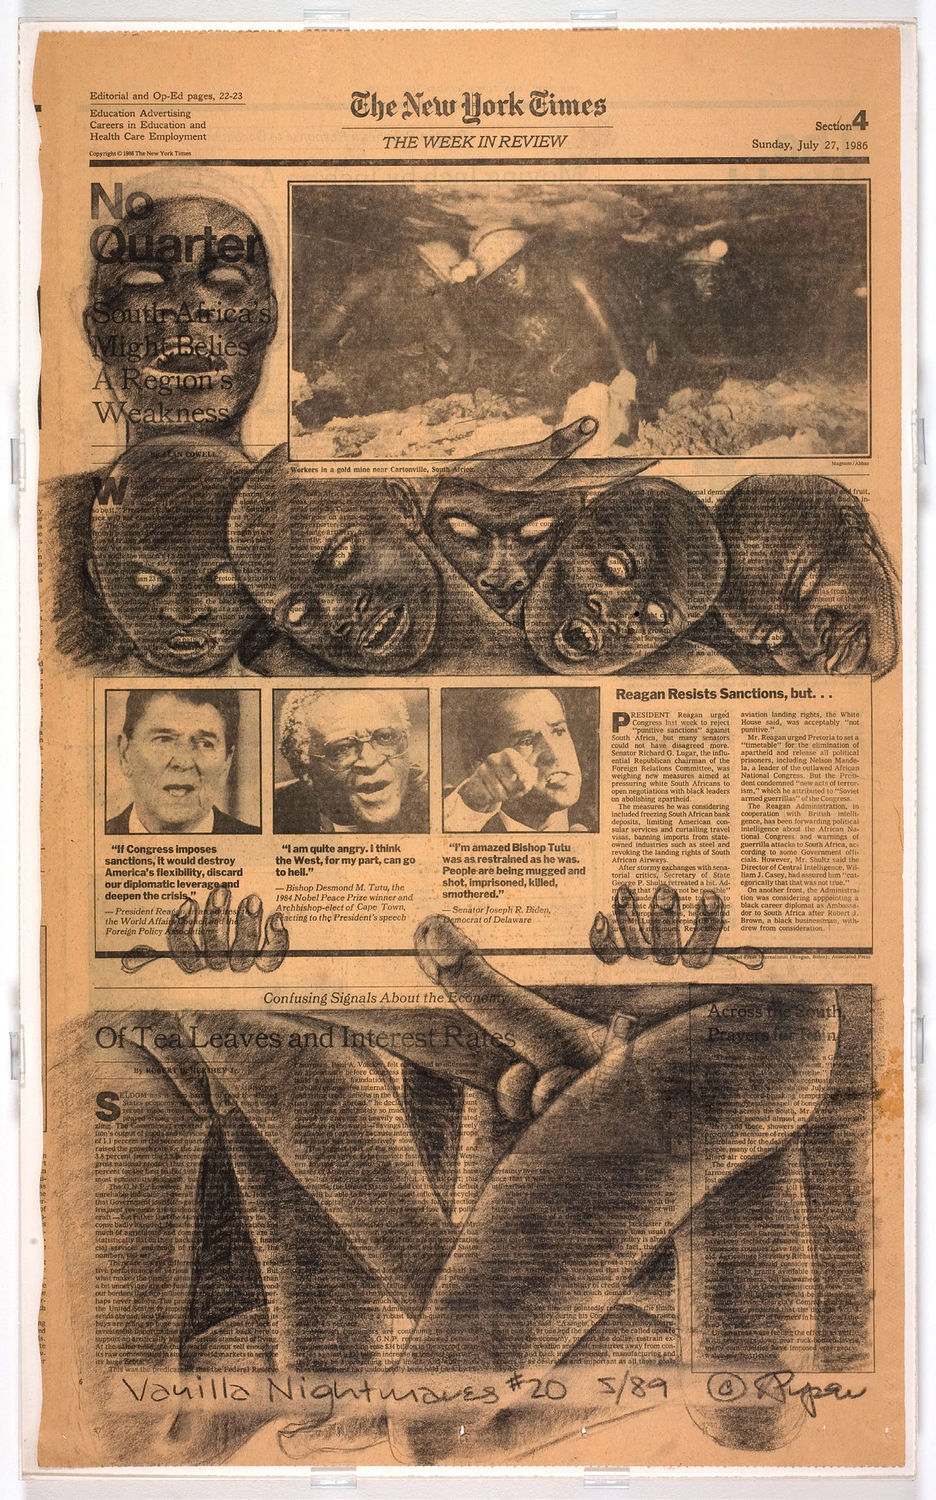 Adrian Piper, Vanilla Nightmares #20, 1989. Charcoal on newspaper. 23 × 13 ¾ in. (58.4 × 34.9 cm). Hammer Museum, Los Angeles. Purchase. © Adrian Piper Research Archive Foundation Berlin.